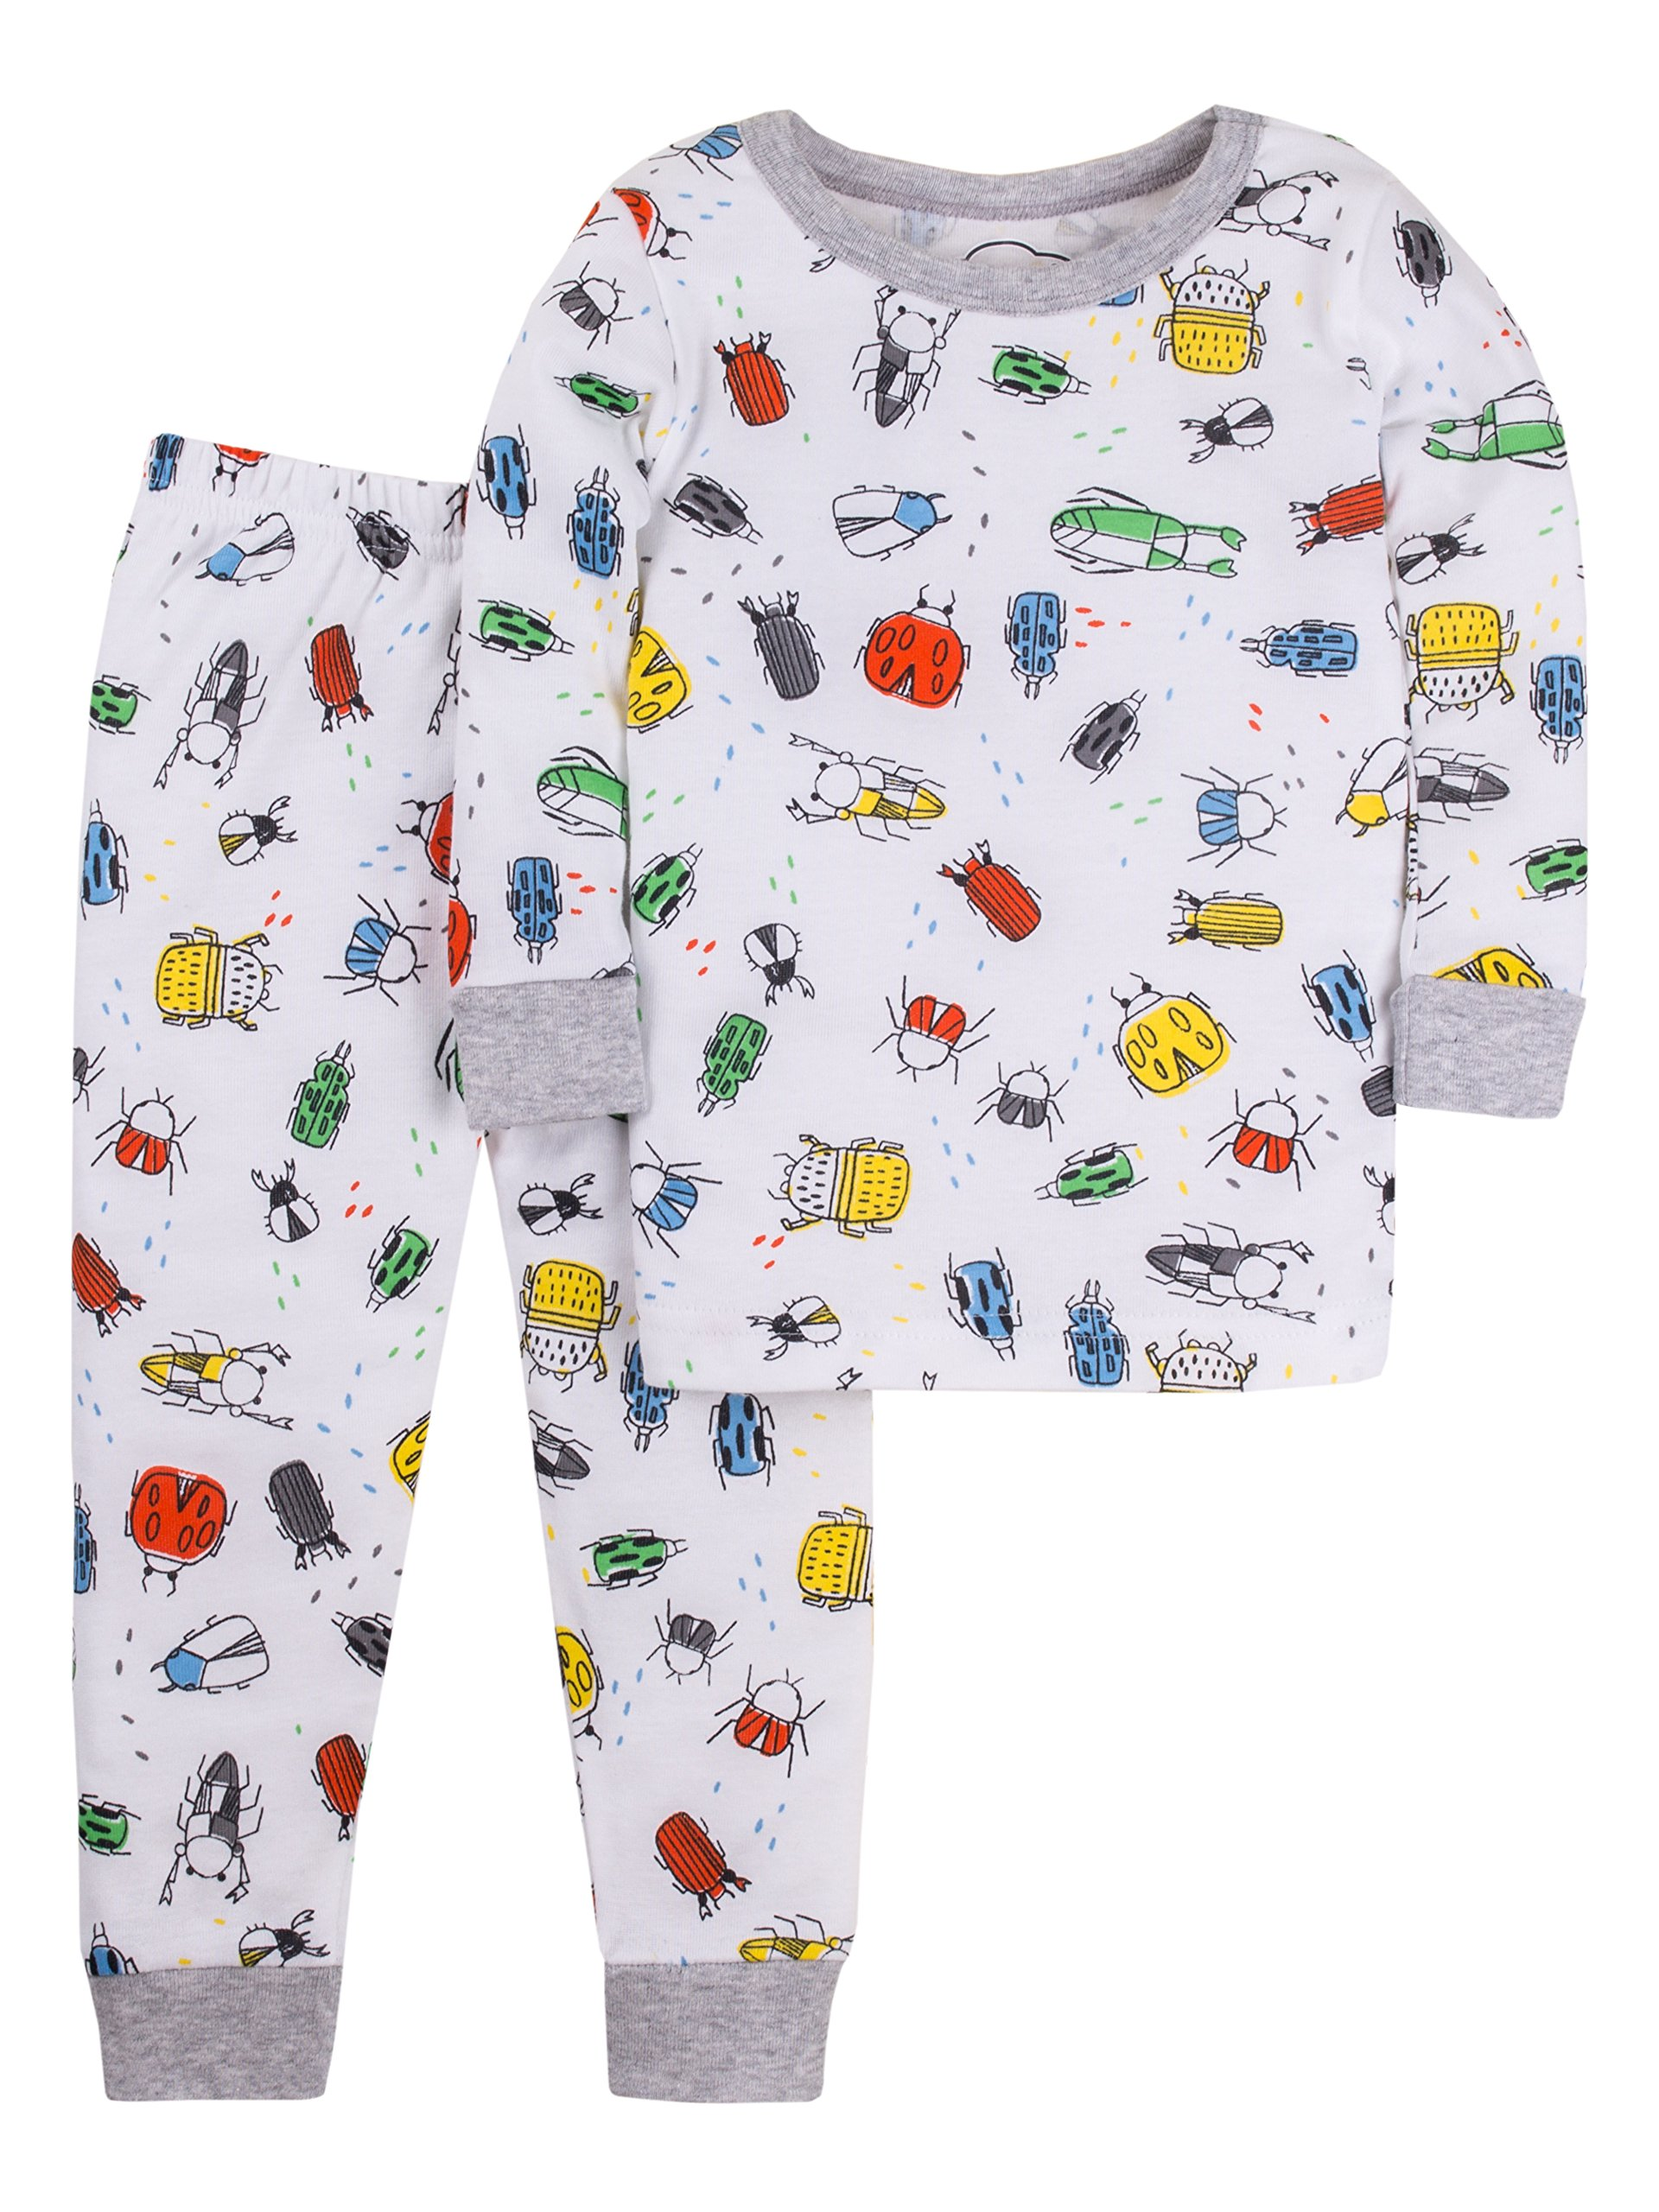 Lamaze Toddler Boys' Organic 2 Piece Longsleeve Tight Fit Pajamas Set, White, 3T